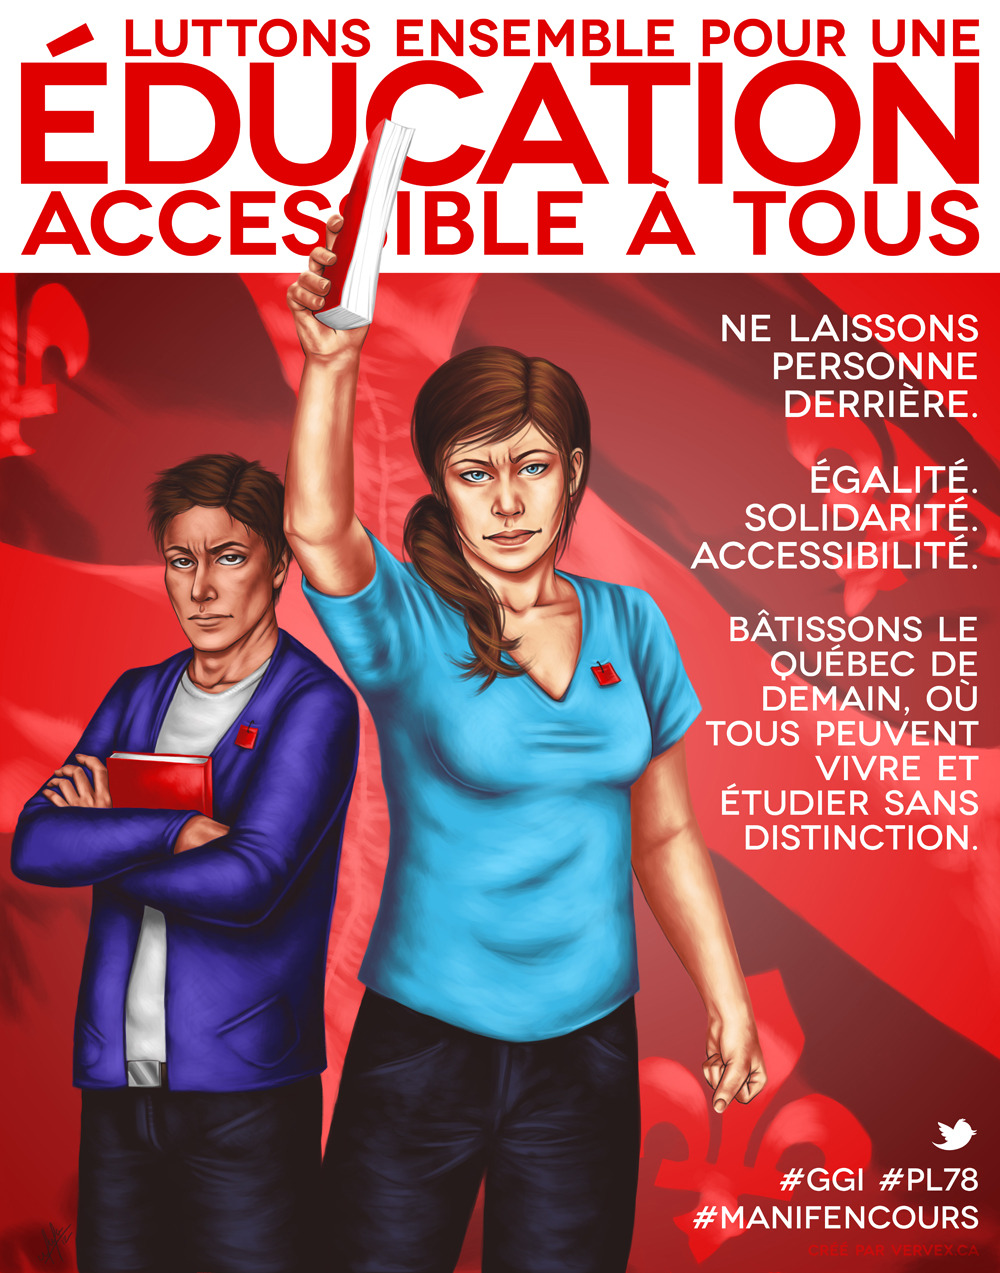 Luttons ensemble pour une éducation accessible à tousPolitically flavoured poster supporting the student strike in Québec against tuition increase. Click here to see it on DeviantART(link to printable version also available there)